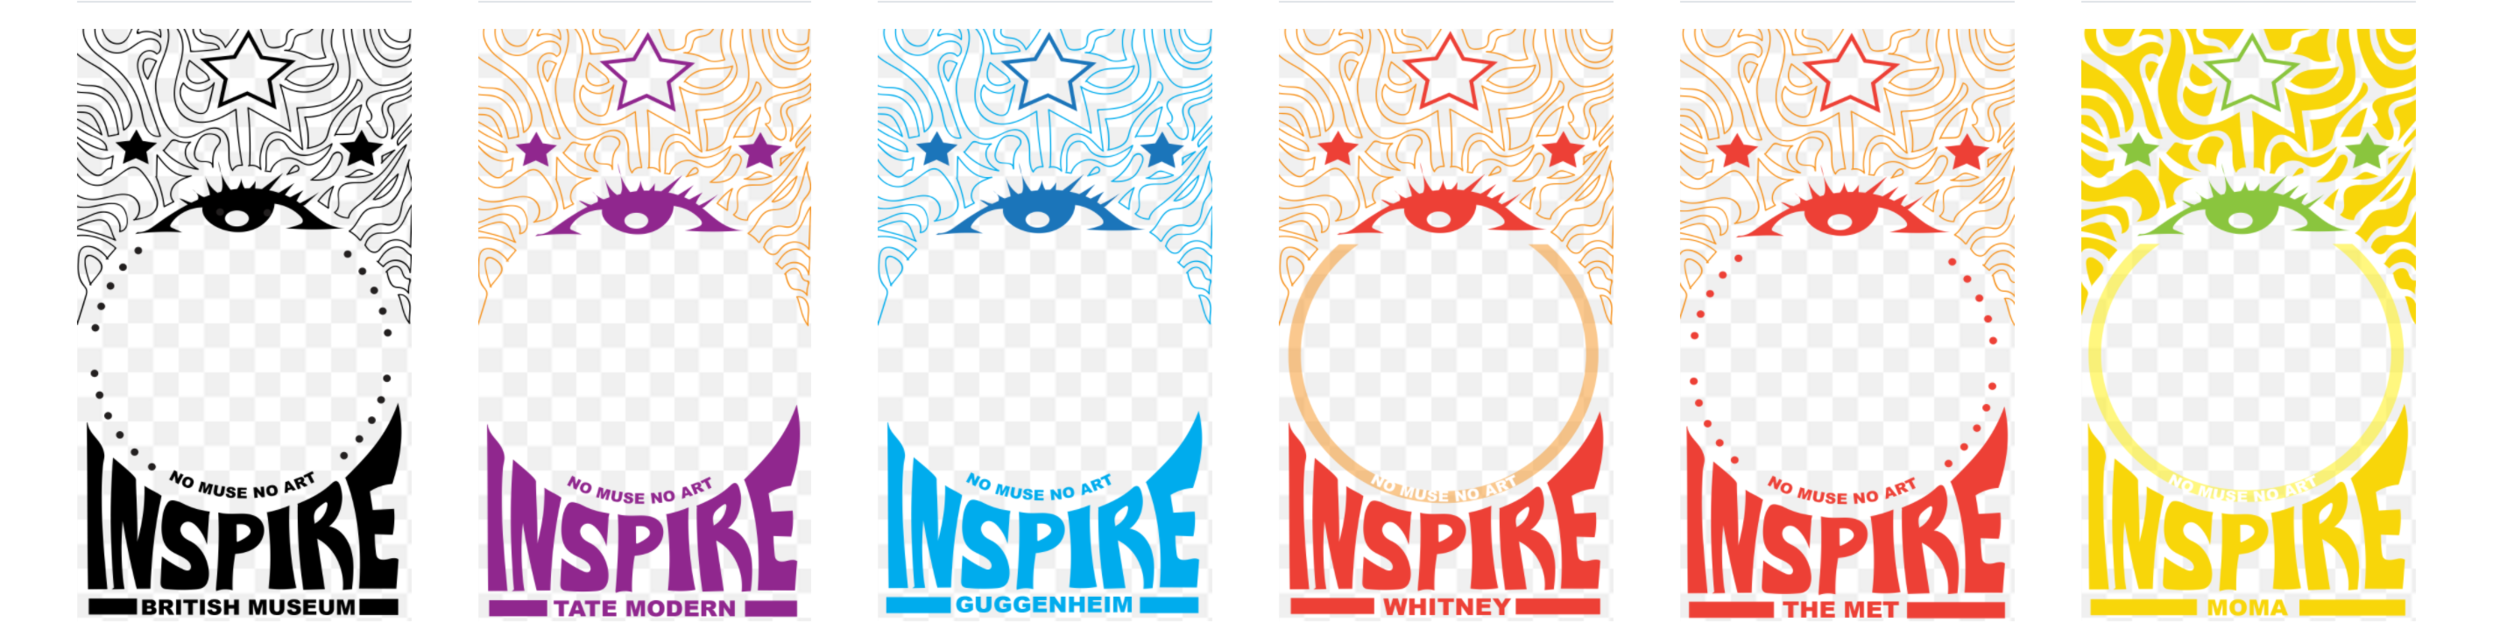 6 Geofilters created by Neo Pop Artist Rah Crawford which users can interact with during the Aug. 21st solar eclipse at: the Met, Moma, the Guggenheim, the Whitney, the British Museum and Tate Modern.